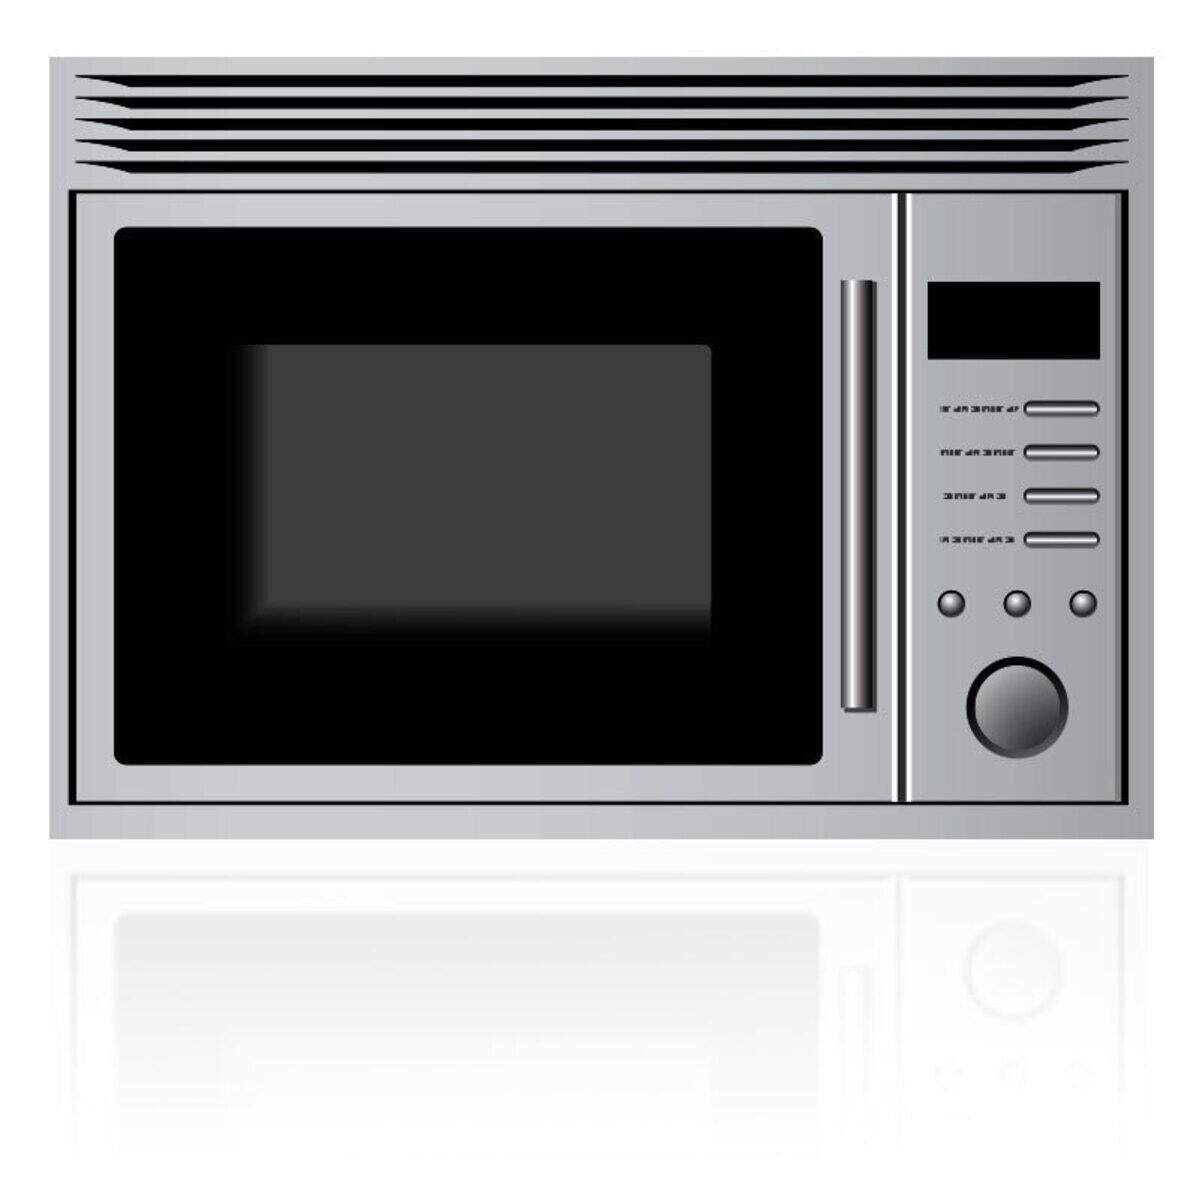 Home Built In Microwave Warranty Coverage American Home Shield